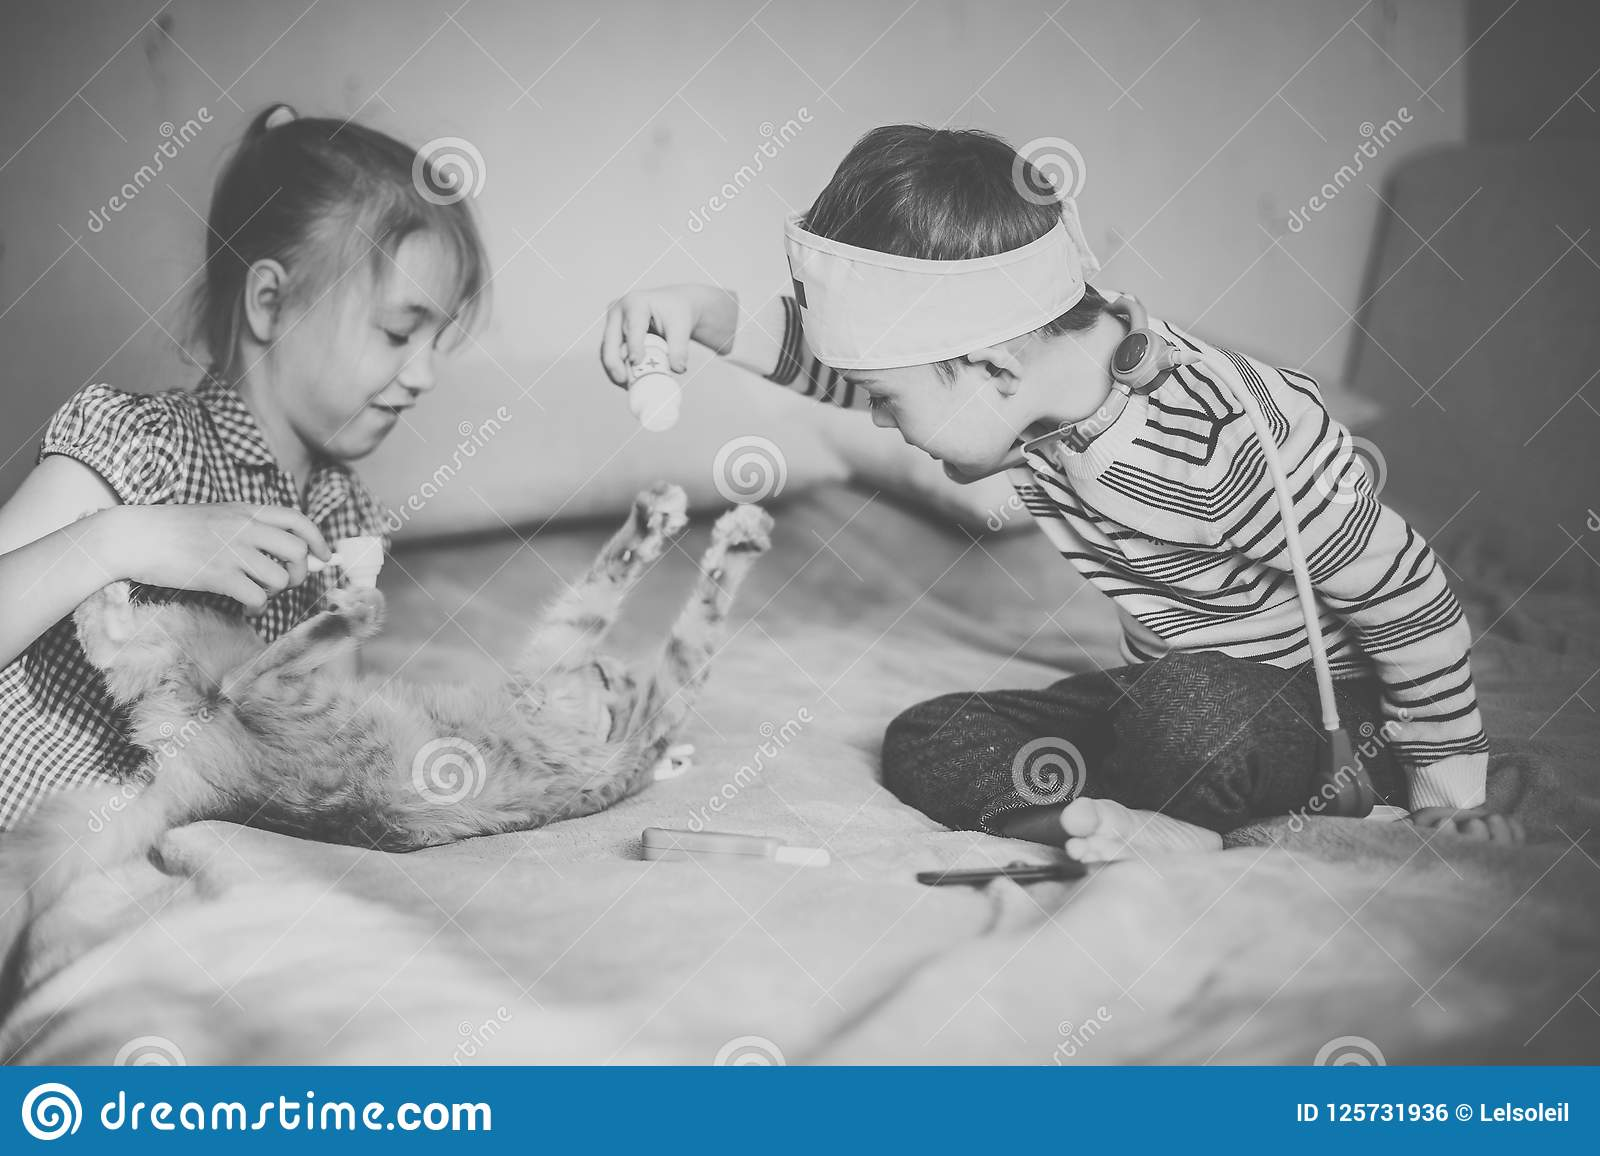 Little boy in the glasses with syndrome dawn and blonde girl play with toys and ginger cat. Black and white